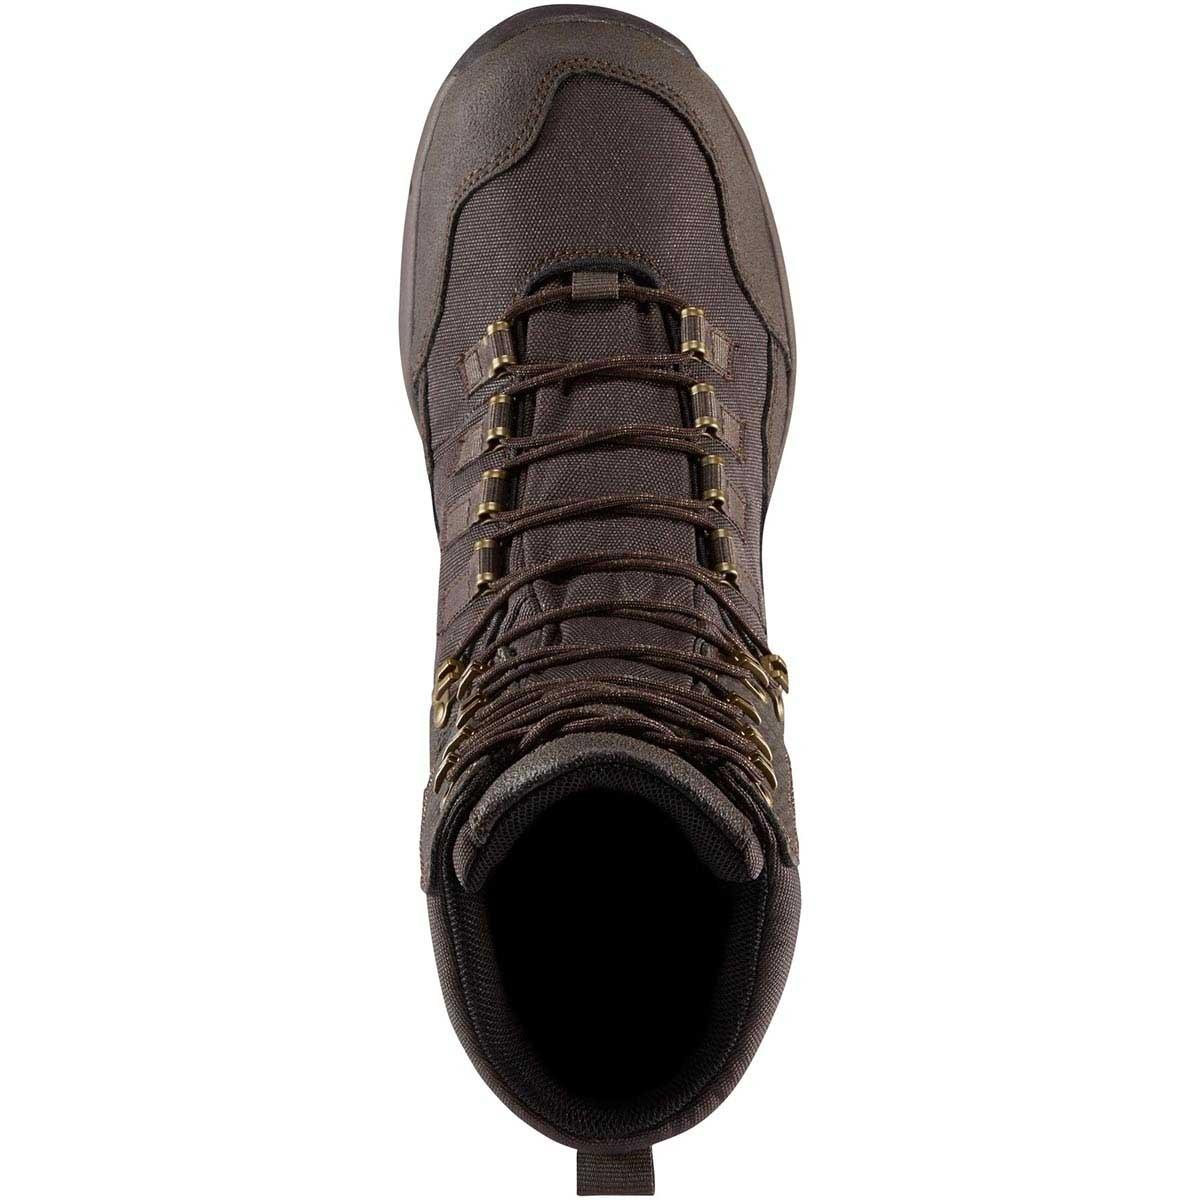 """Danner Vital 8"""" Non-Insulated Hunting Boots_4.jpg"""